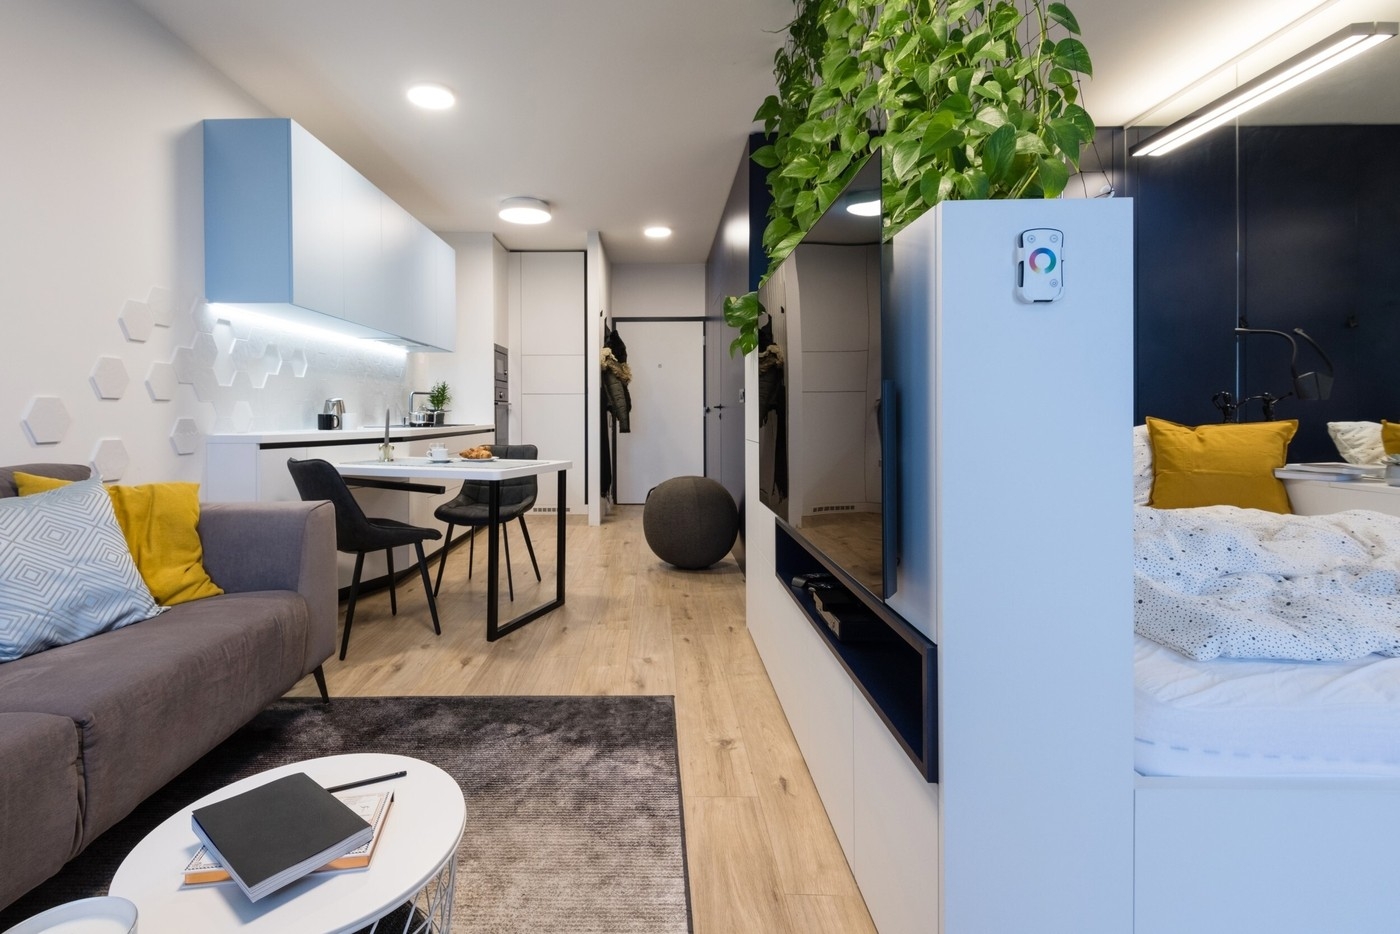 Modern interior of small apartment